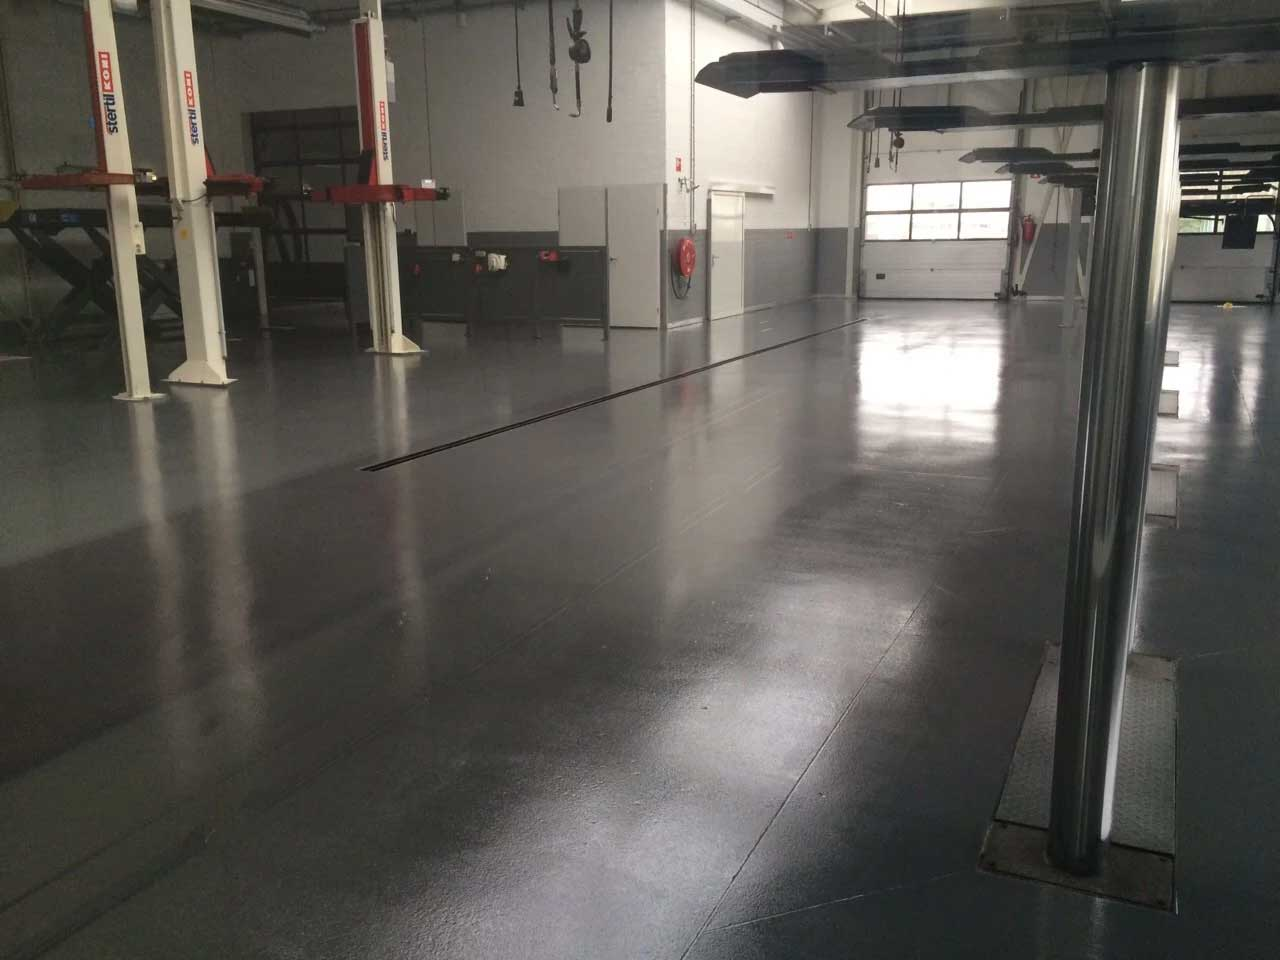 Coatingvloer autogarage